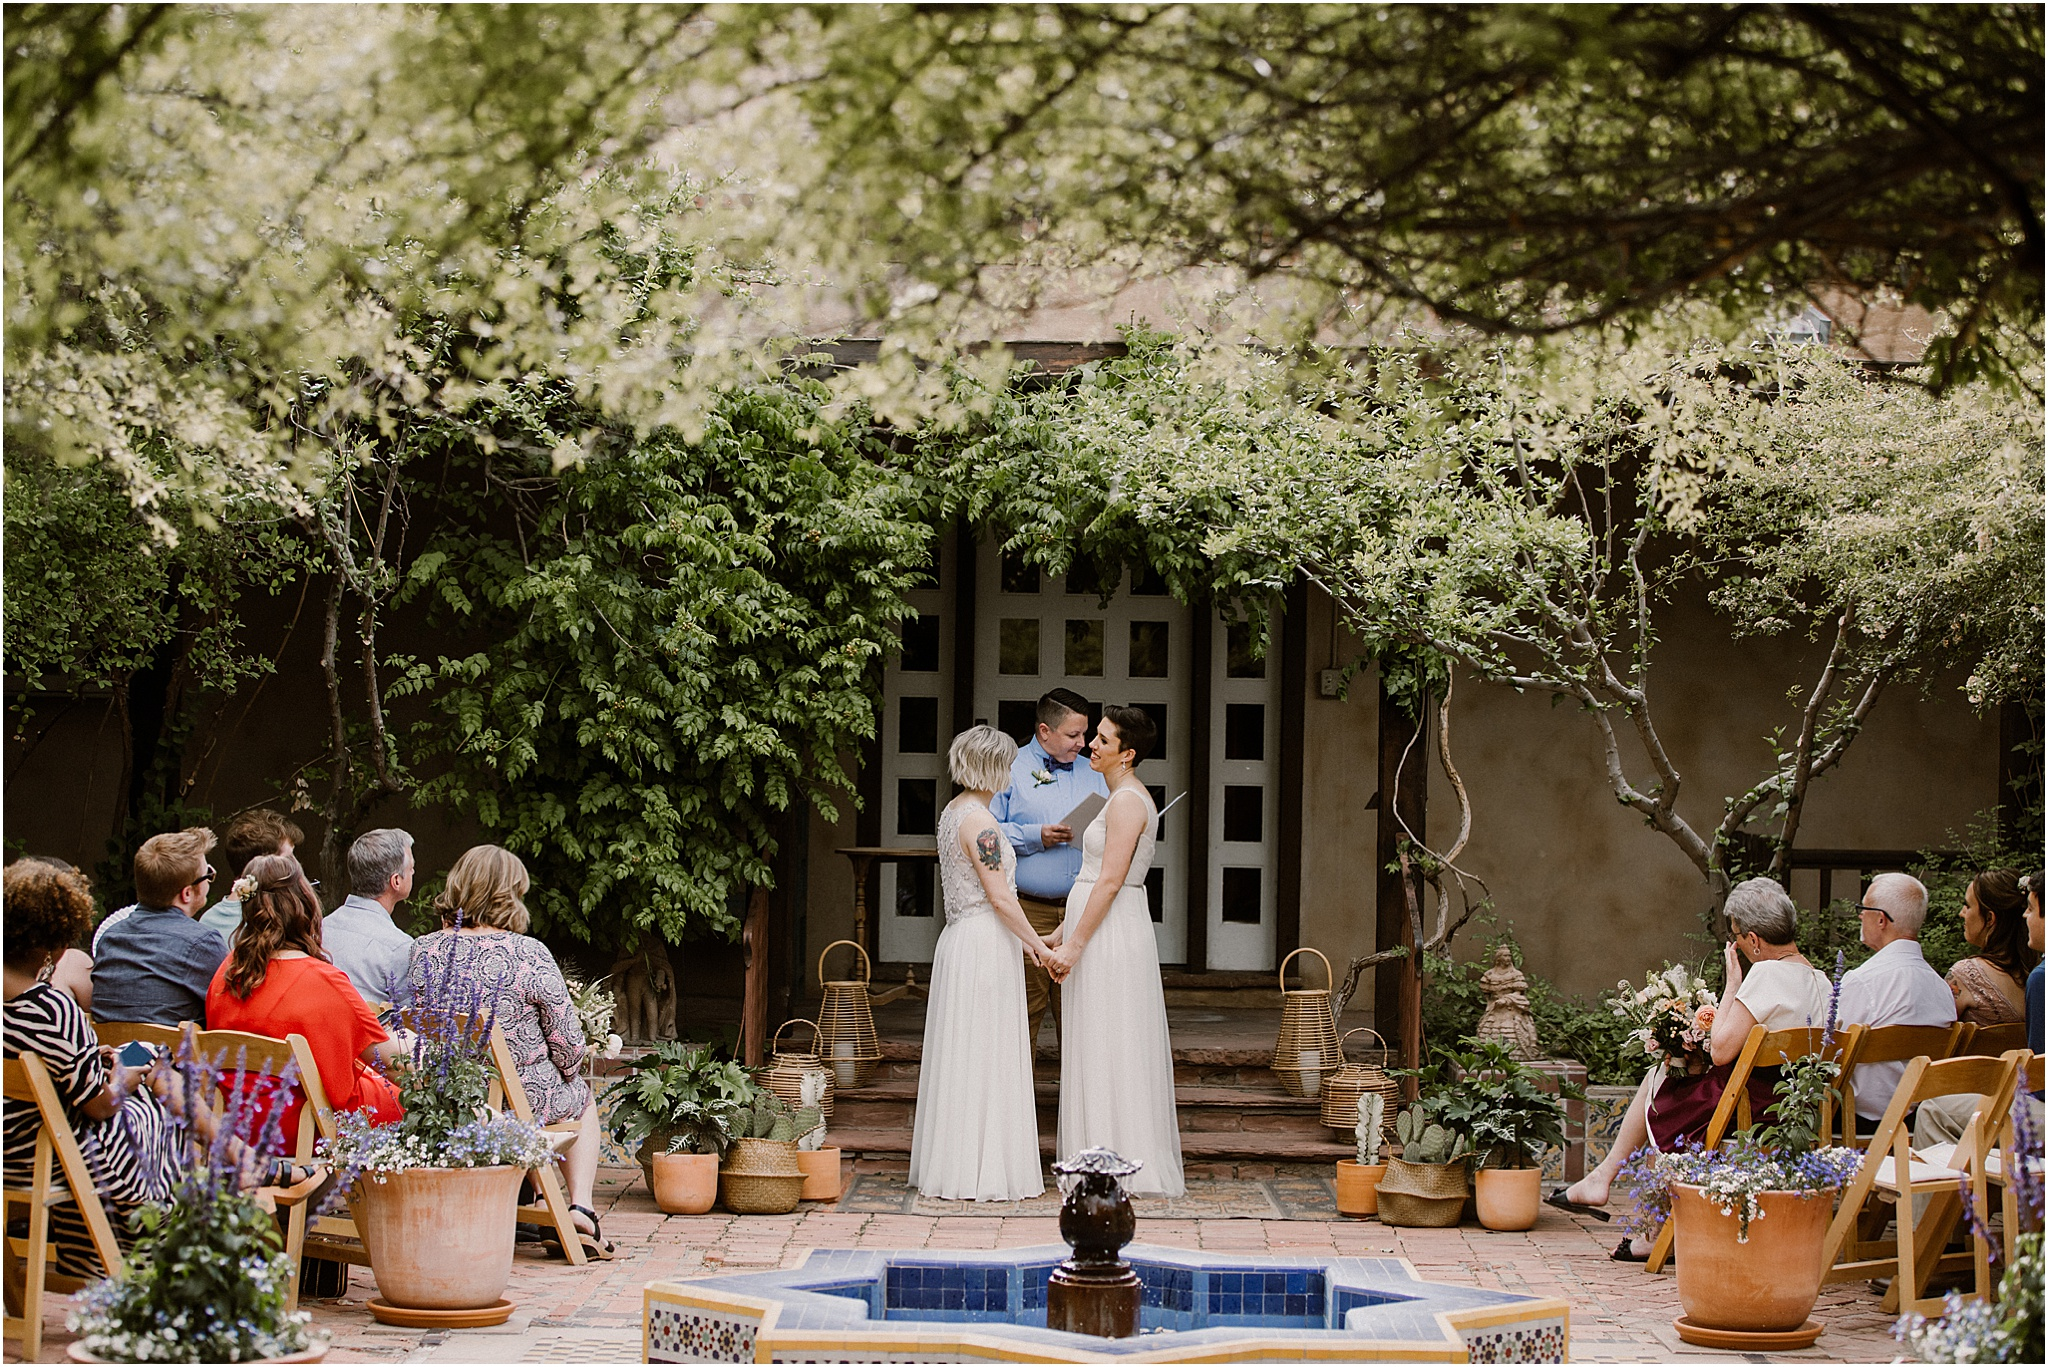 Kelly_Lisa_Los Poblanos_Wedding_Blue Rose Photography100